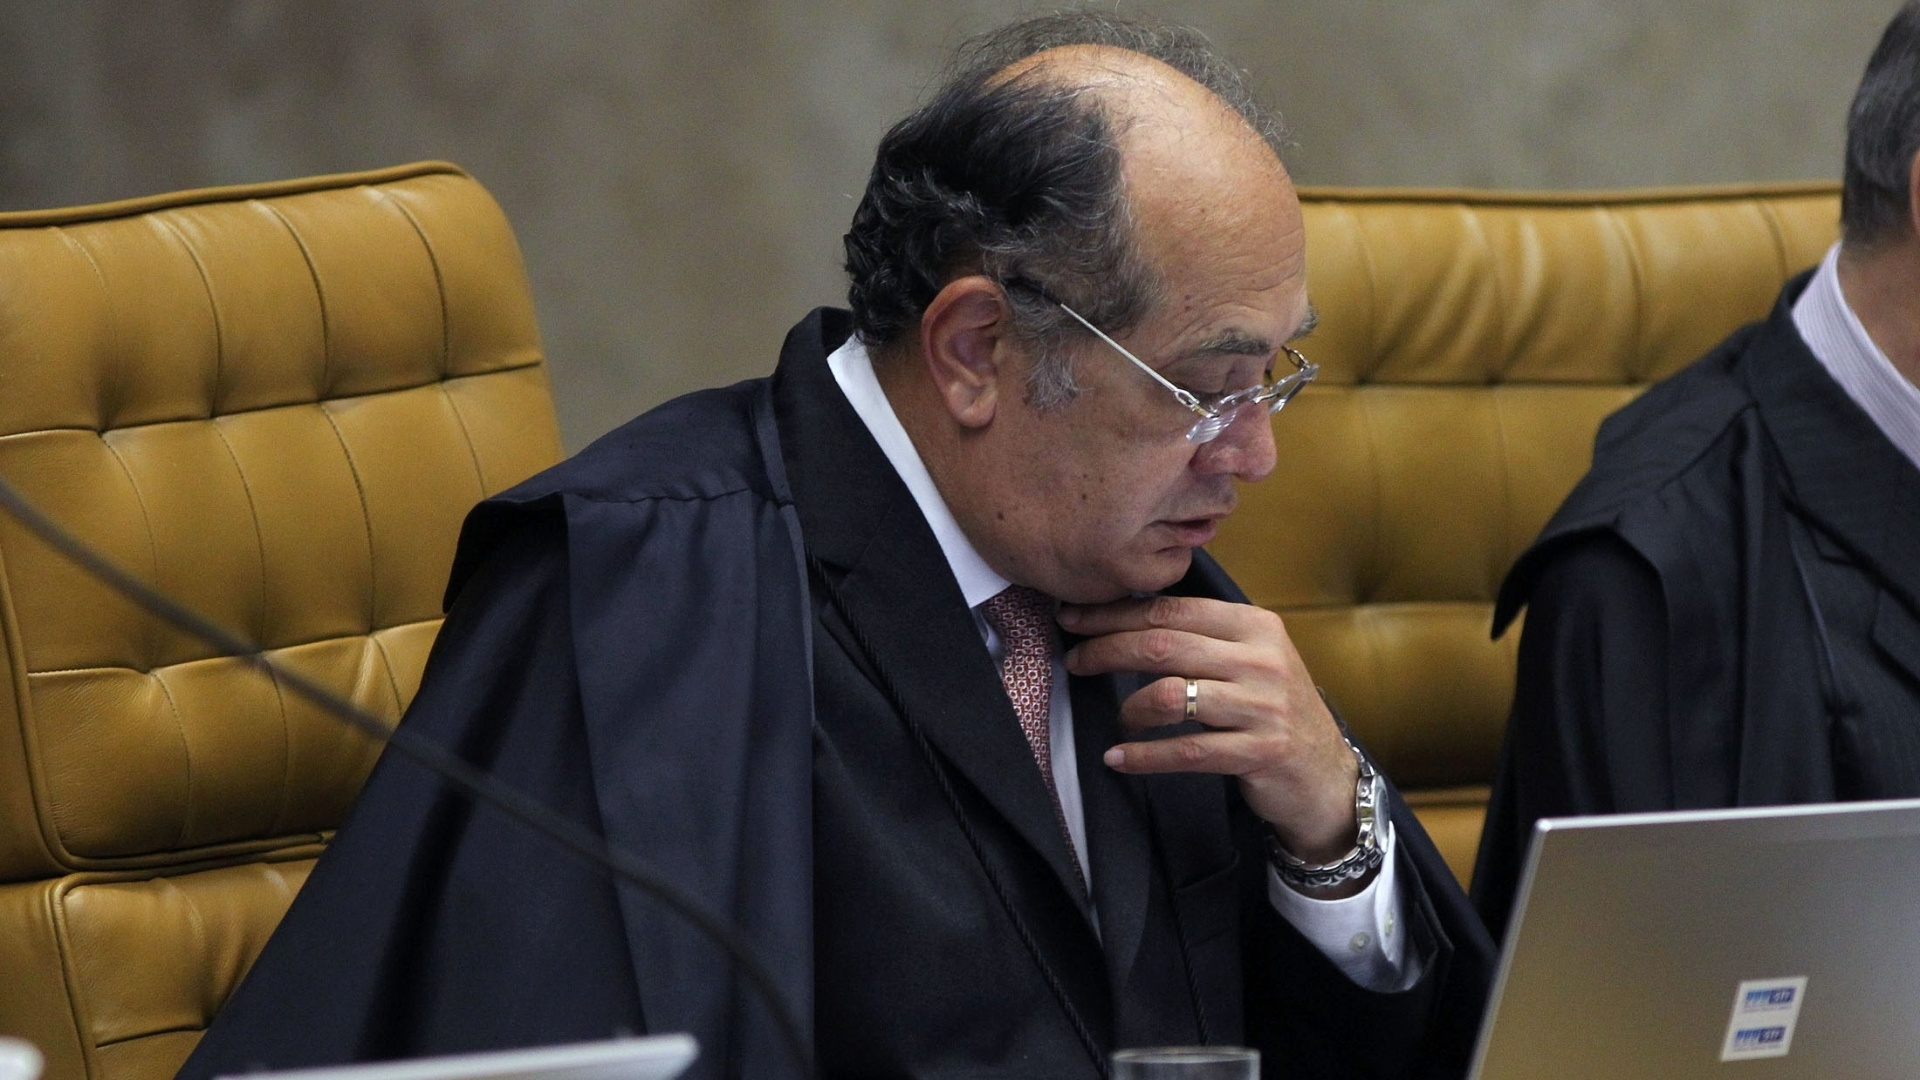 25.out.2012 - O ministro Gilmar Mendes acompanham sesso de julgamento do mensalo no Supremo Tribunal Federal, em Braslia. A sesso, dedicada  votao sobre as penas dos rus ligados ao ncleo publicitrio do escndalo, condenou o ex-scio de Marcos Valrio, Ramon Hollerbach, a pelo menos 14 anos 